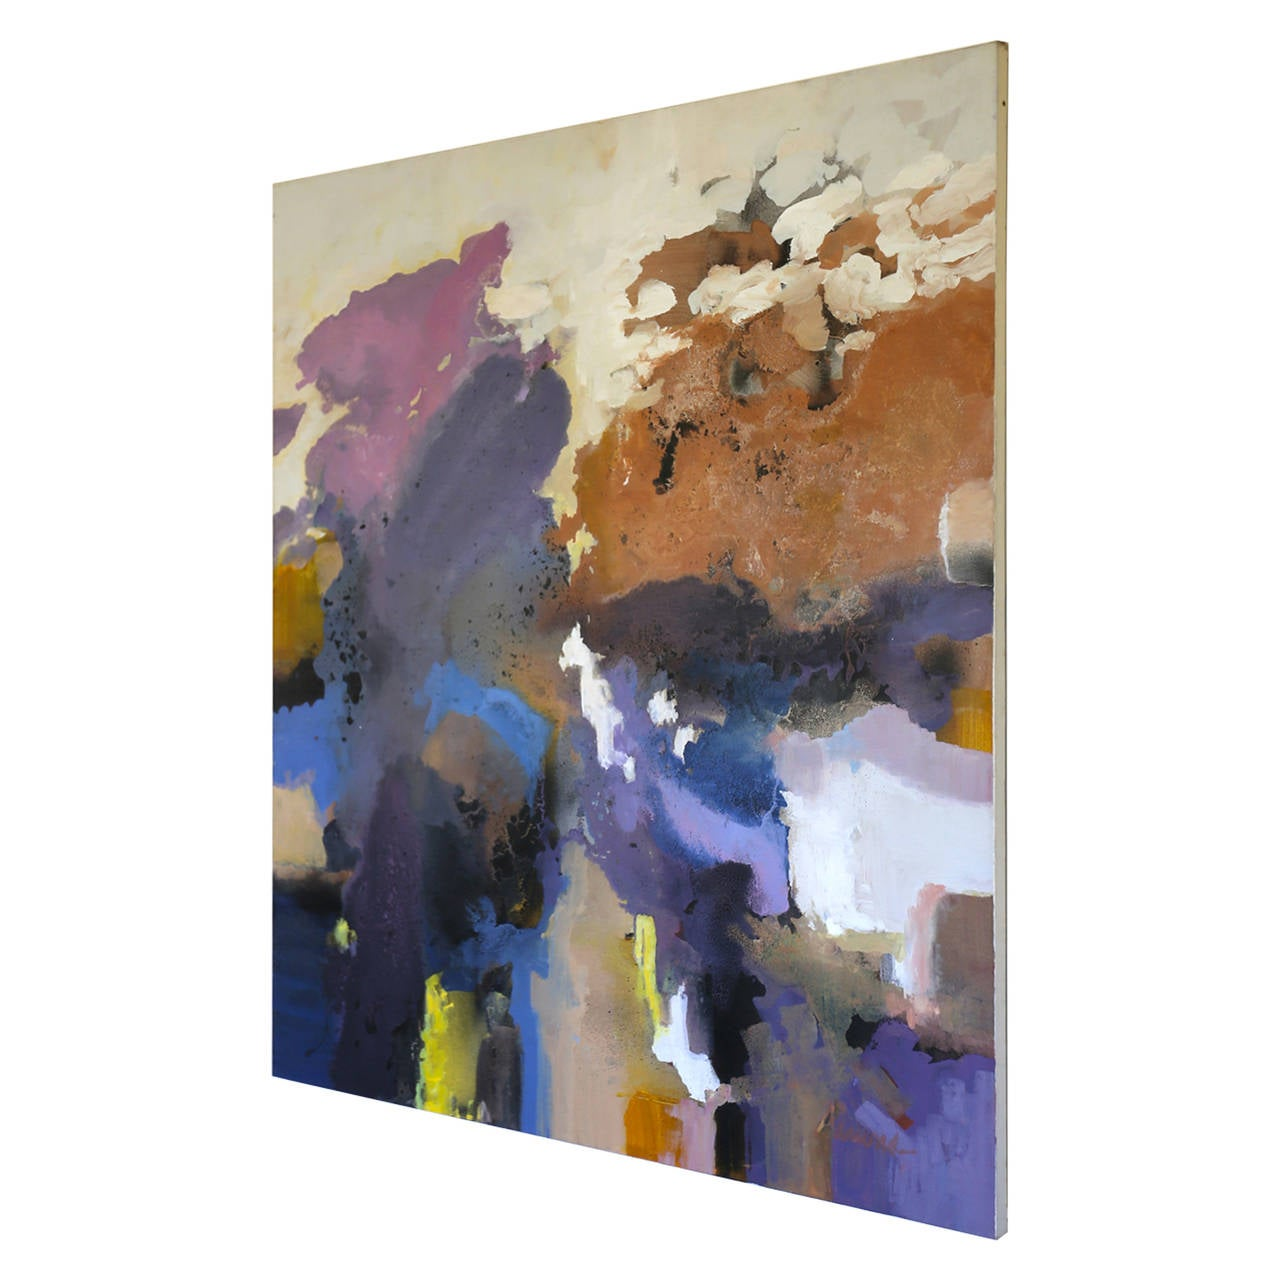 Large-Scale Signed Abstract Painting